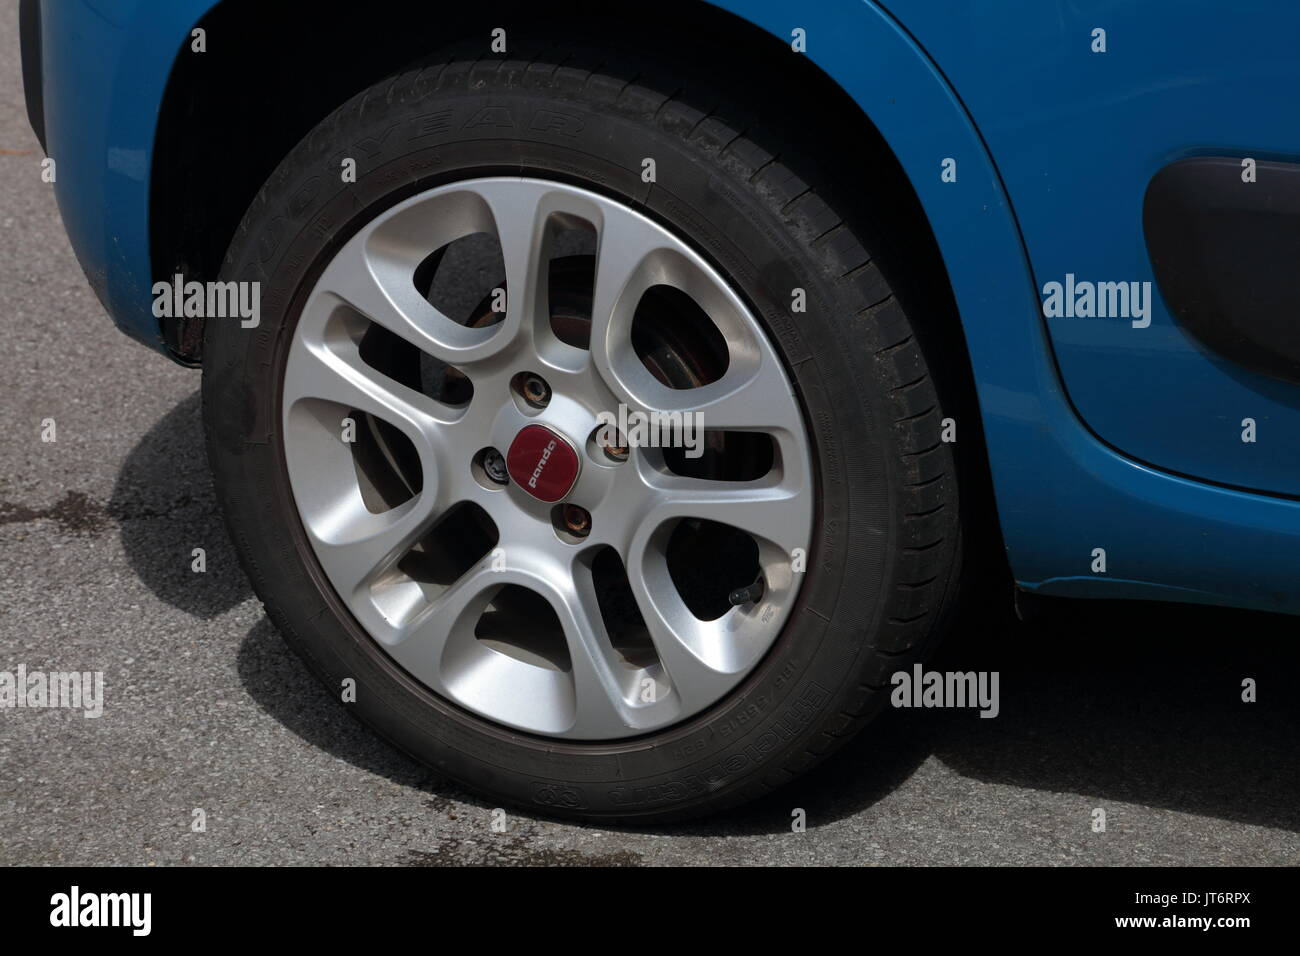 An alloy wheel fixed to a static car with one lock nut and three standard wheel nuts, there is also a car logo disc - Stock Image